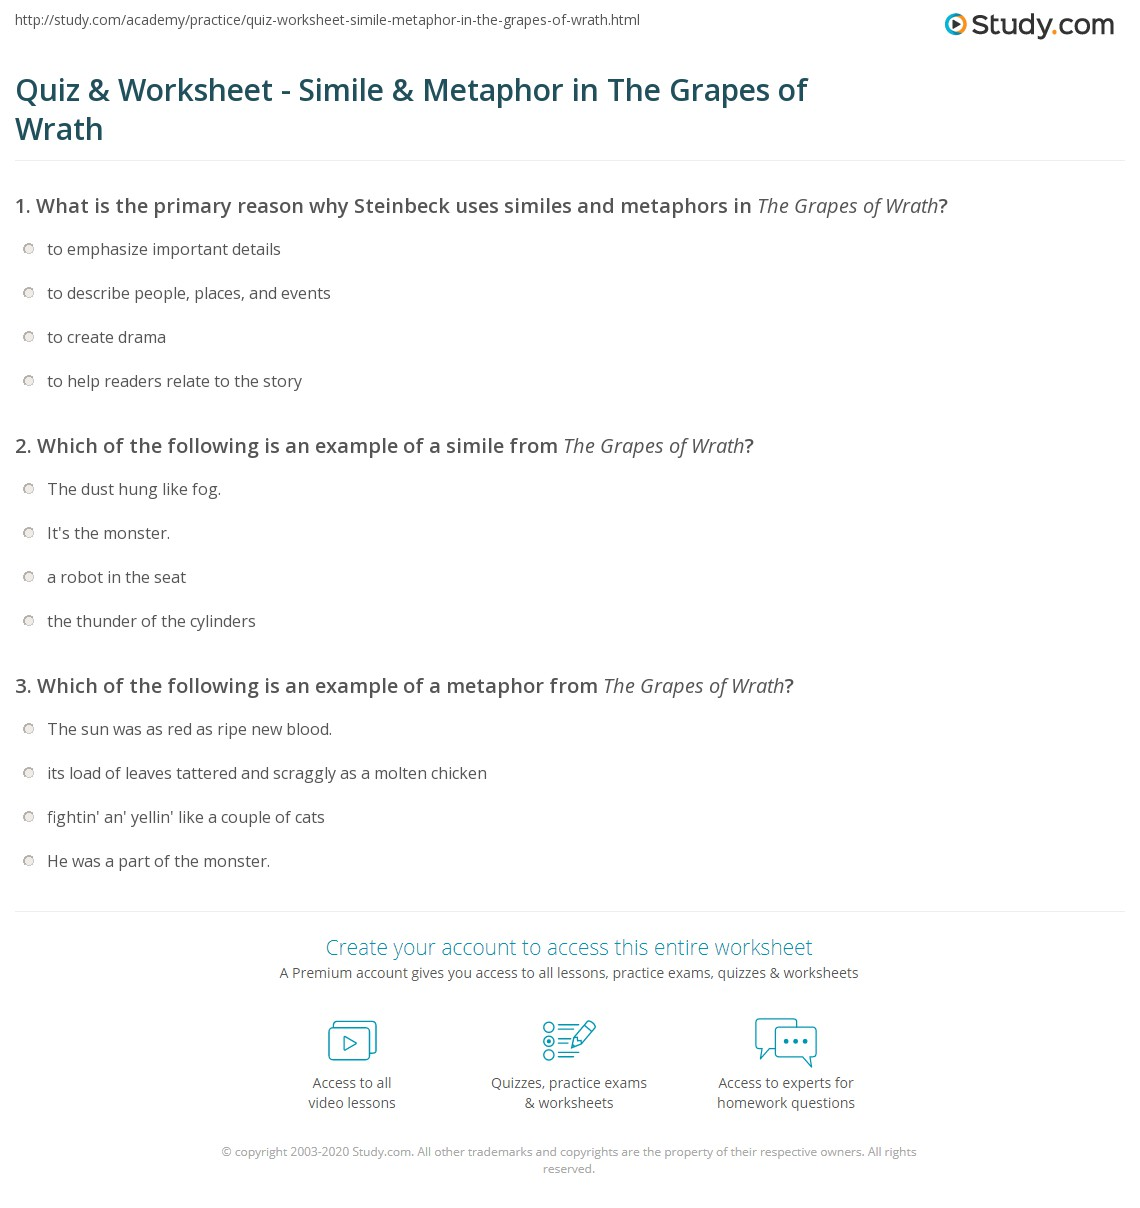 Quiz Worksheet Simile Metaphor in The Grapes of Wrath – Metaphor and Simile Worksheet